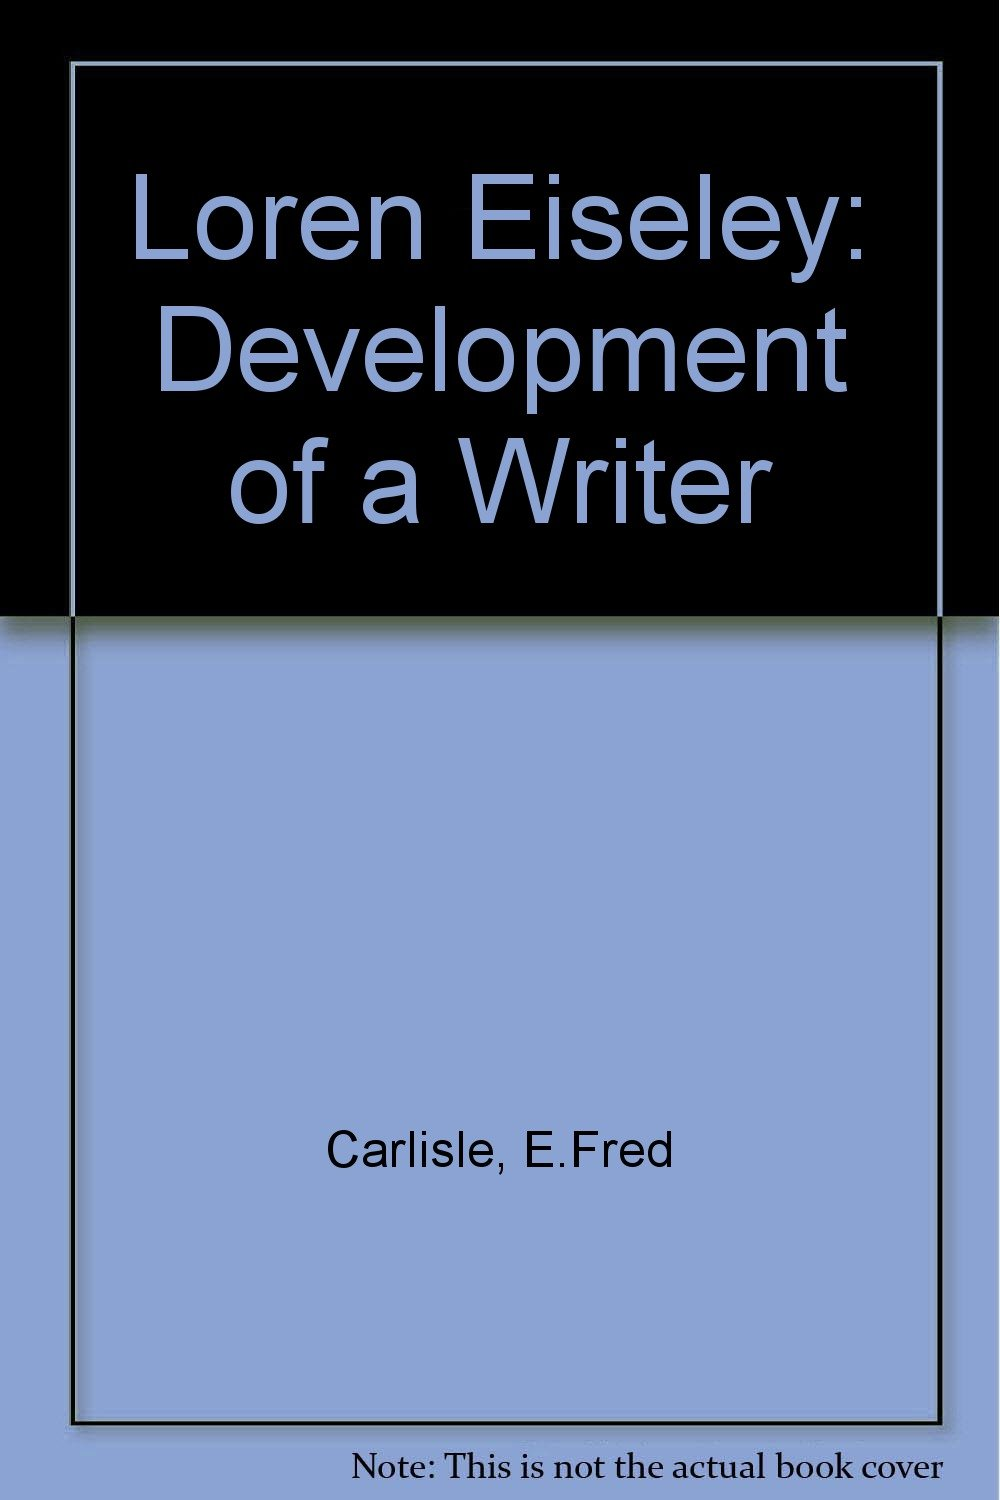 Loren Eiseley: Development of a Writer